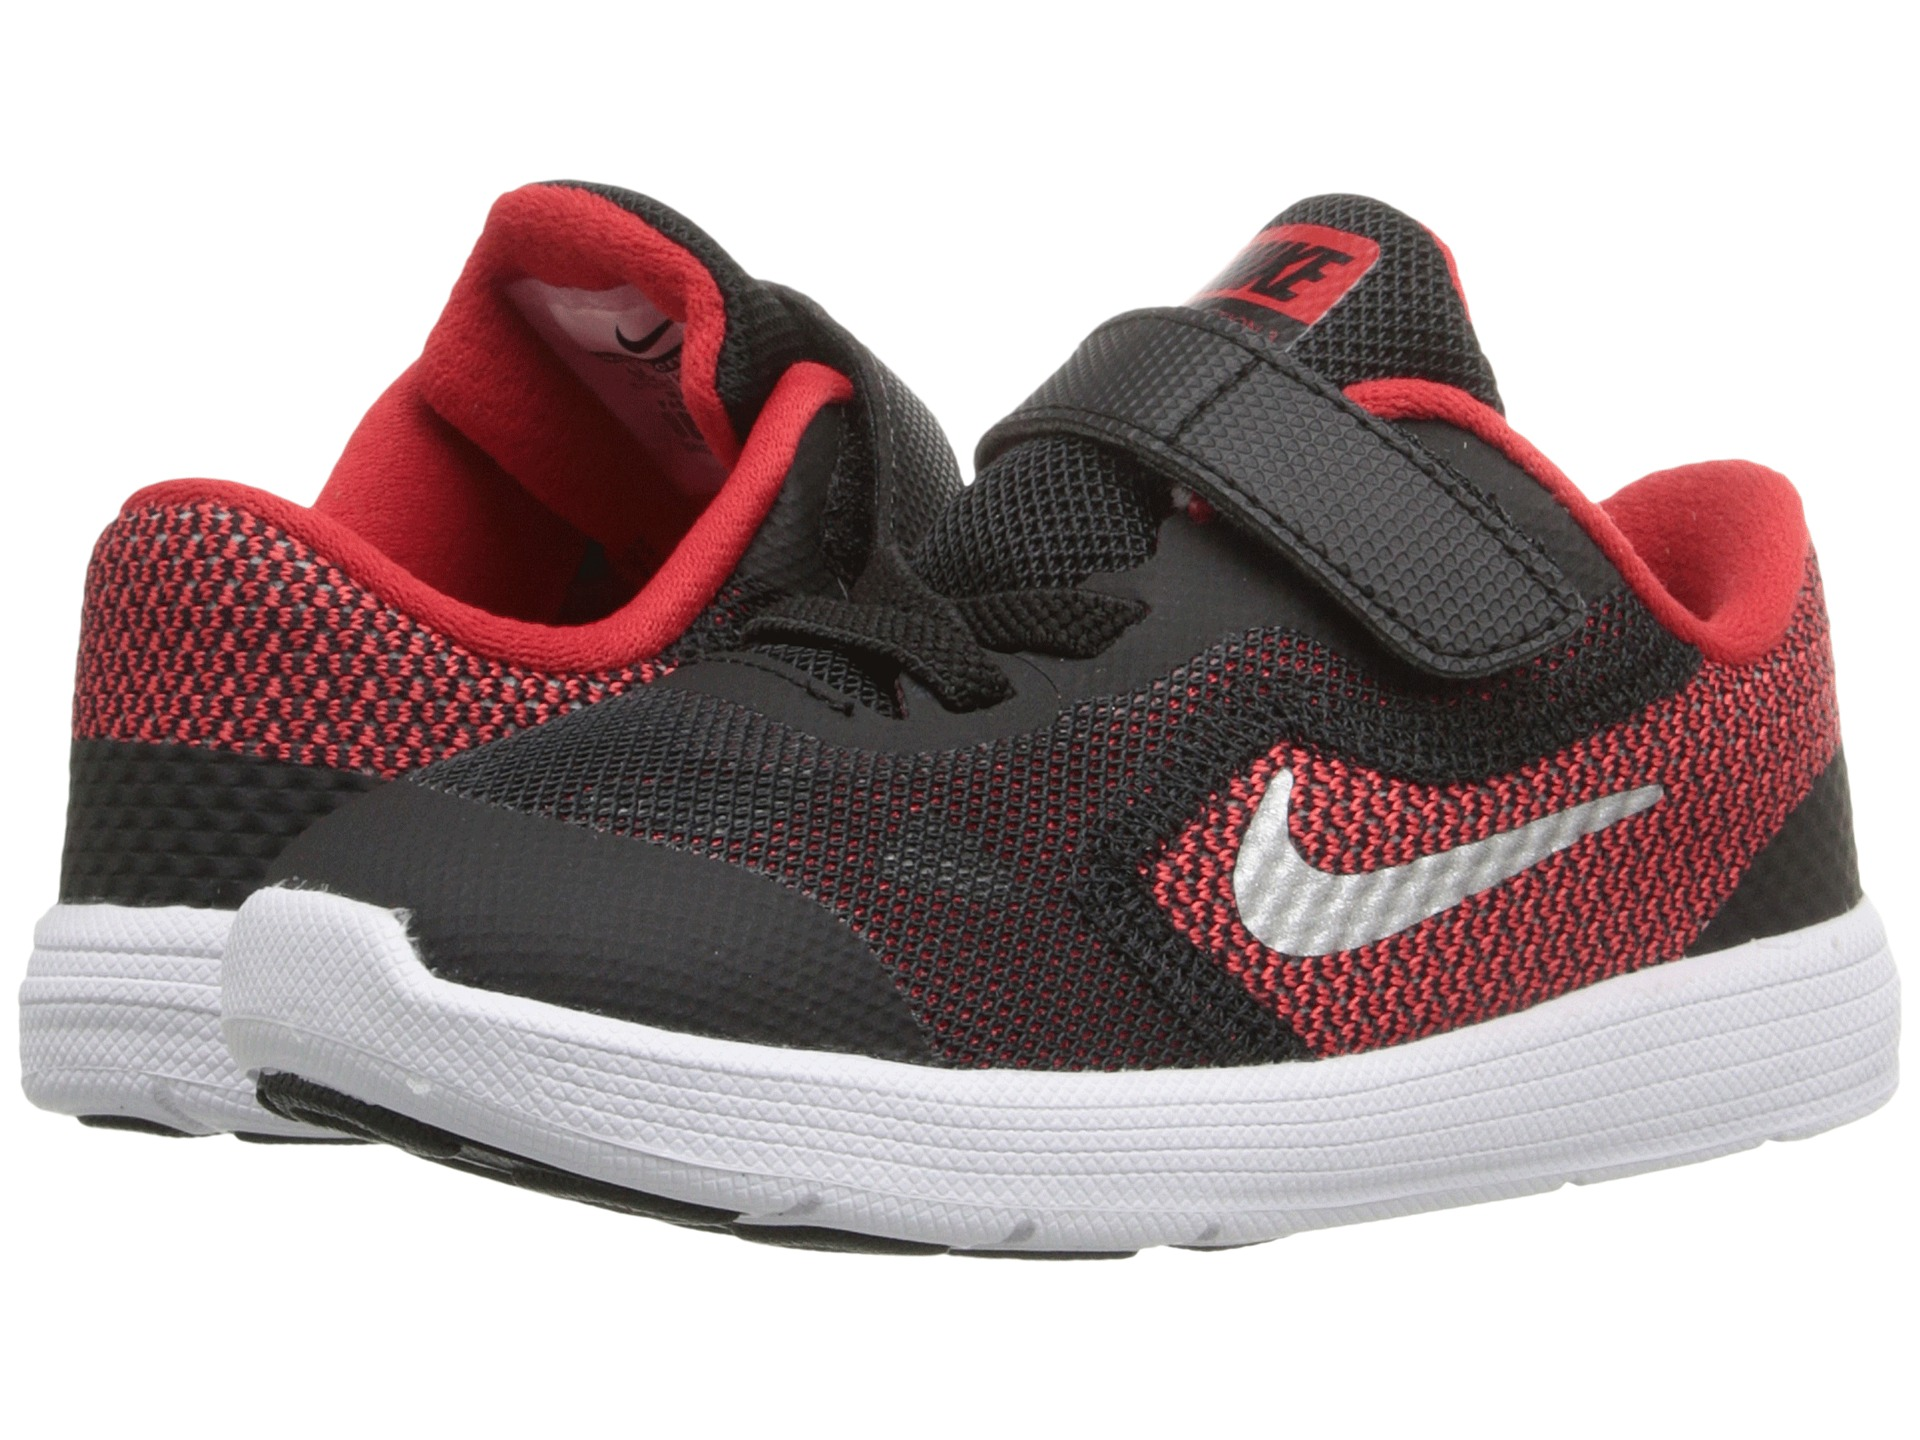 Nike Shoes For Kids